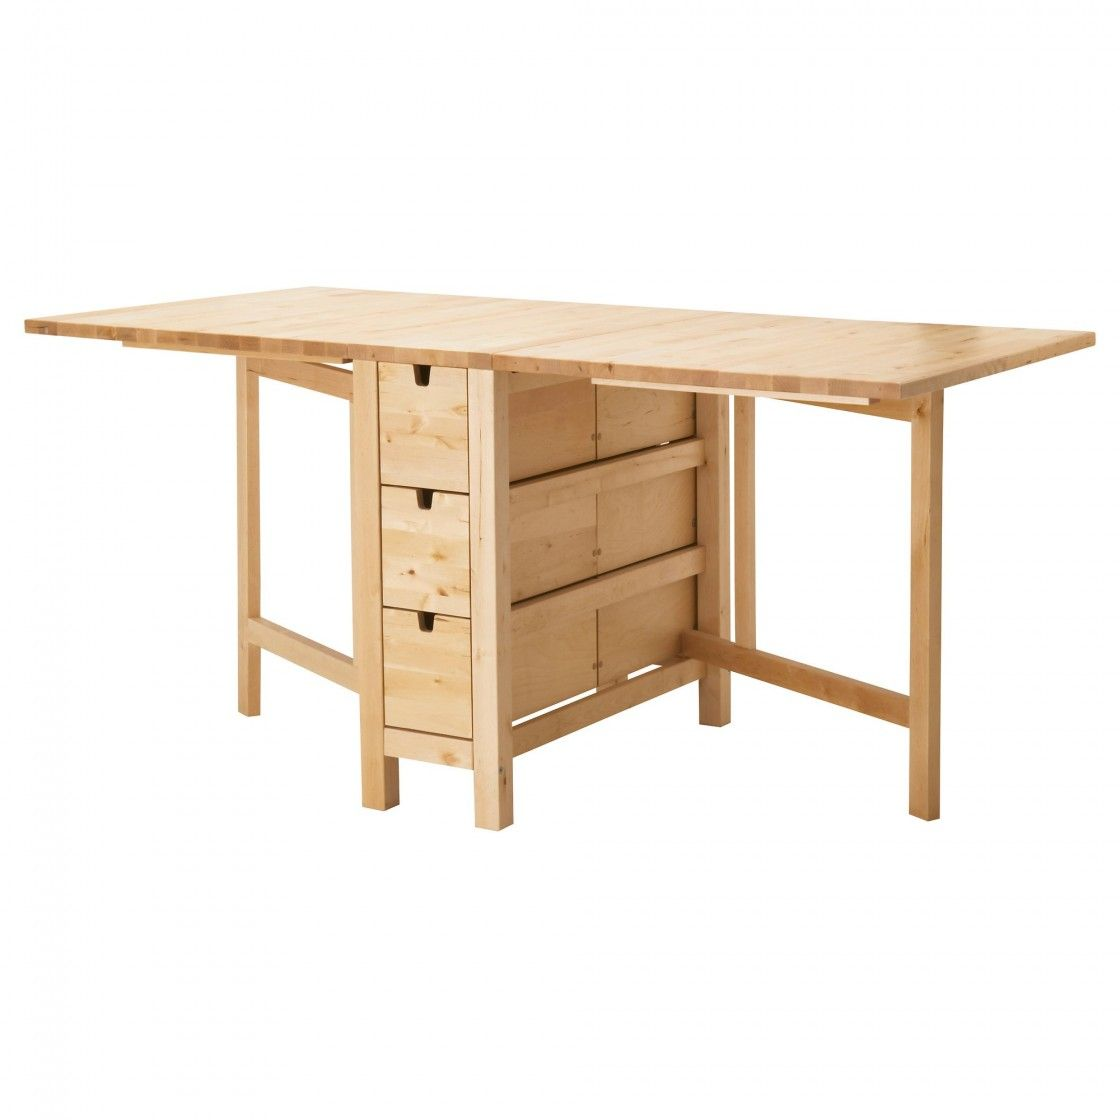 Affordable Natural Finish Oak Wood Ikea Dining Tables